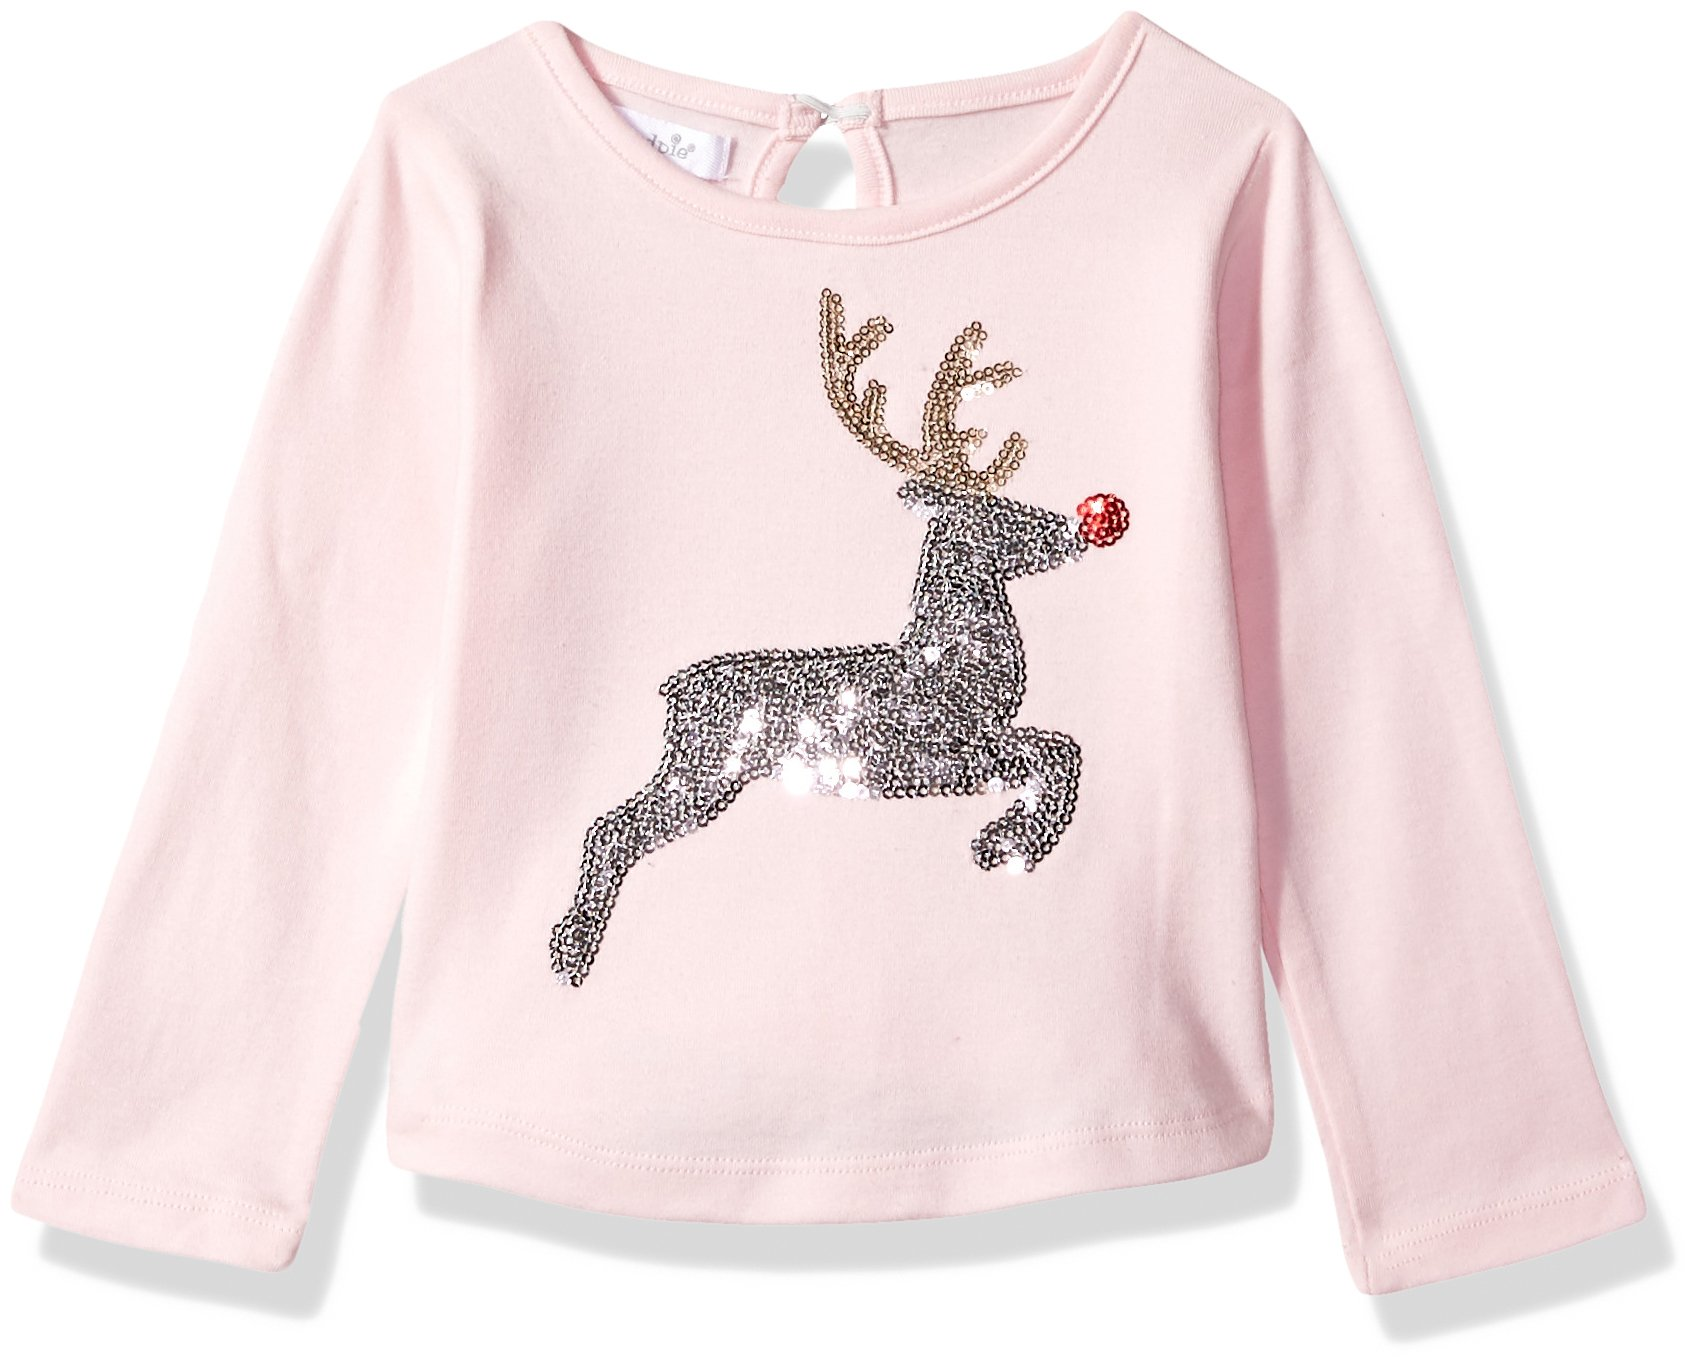 Mud Pie Baby Girls' Toddler Christmas Holiday Long Sleeve T-Shirt, Reindeer, MED/ 2T-3T by Mud Pie